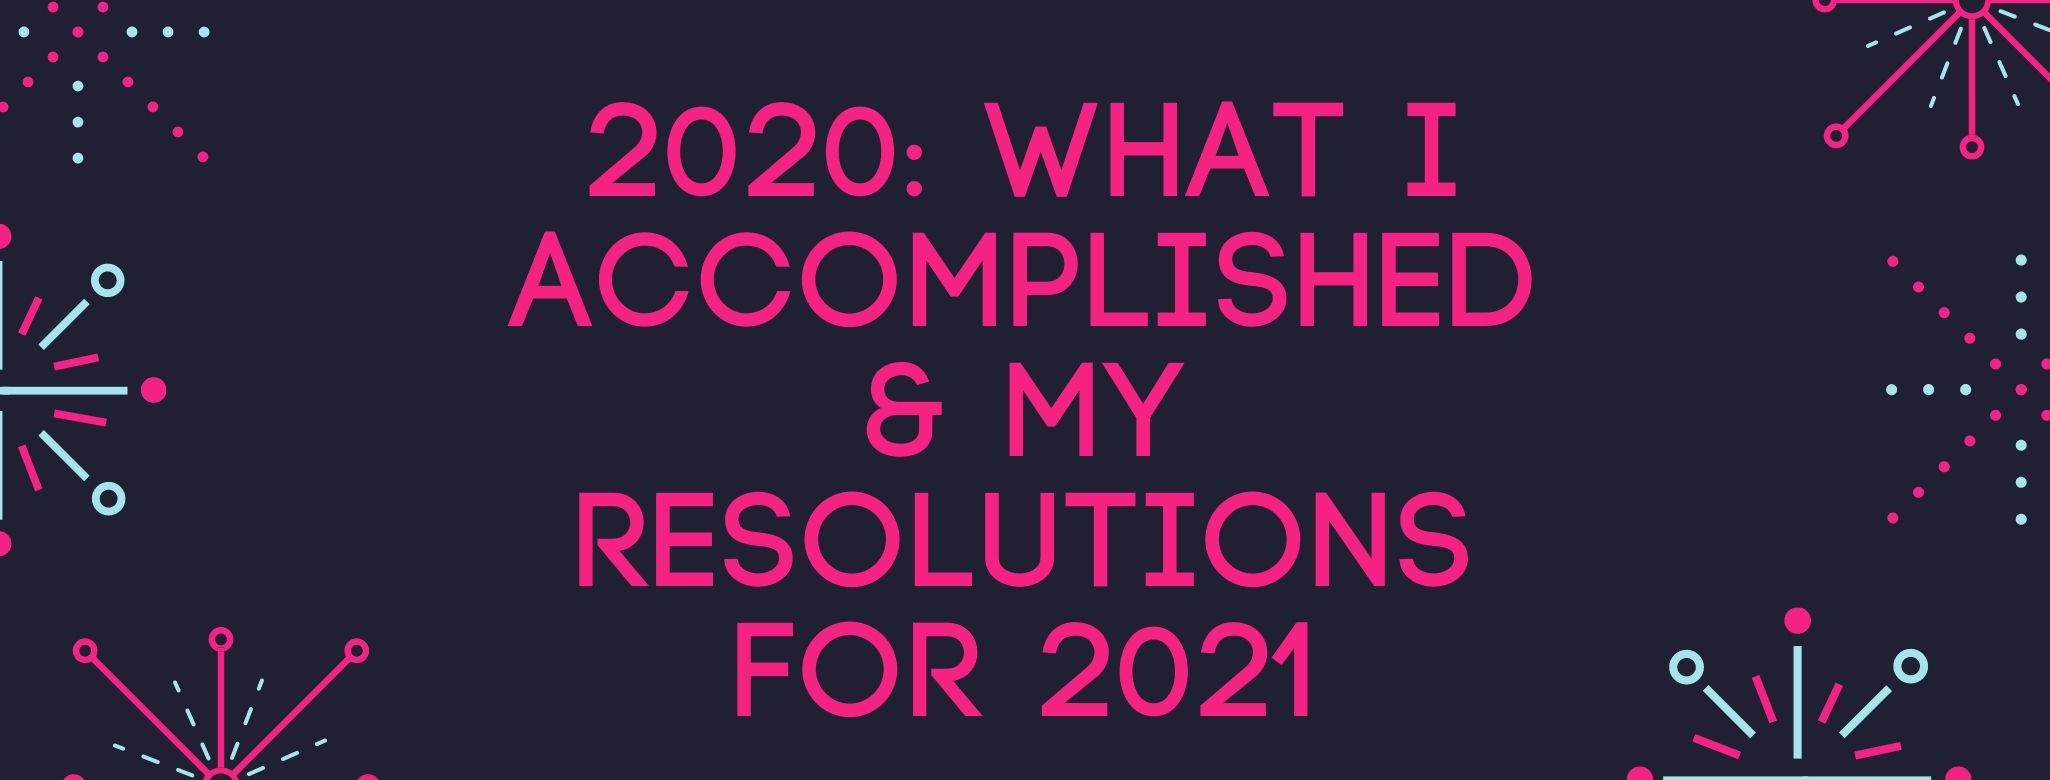 2020: What I Accomplished This Year & My Resolutions for 2021!